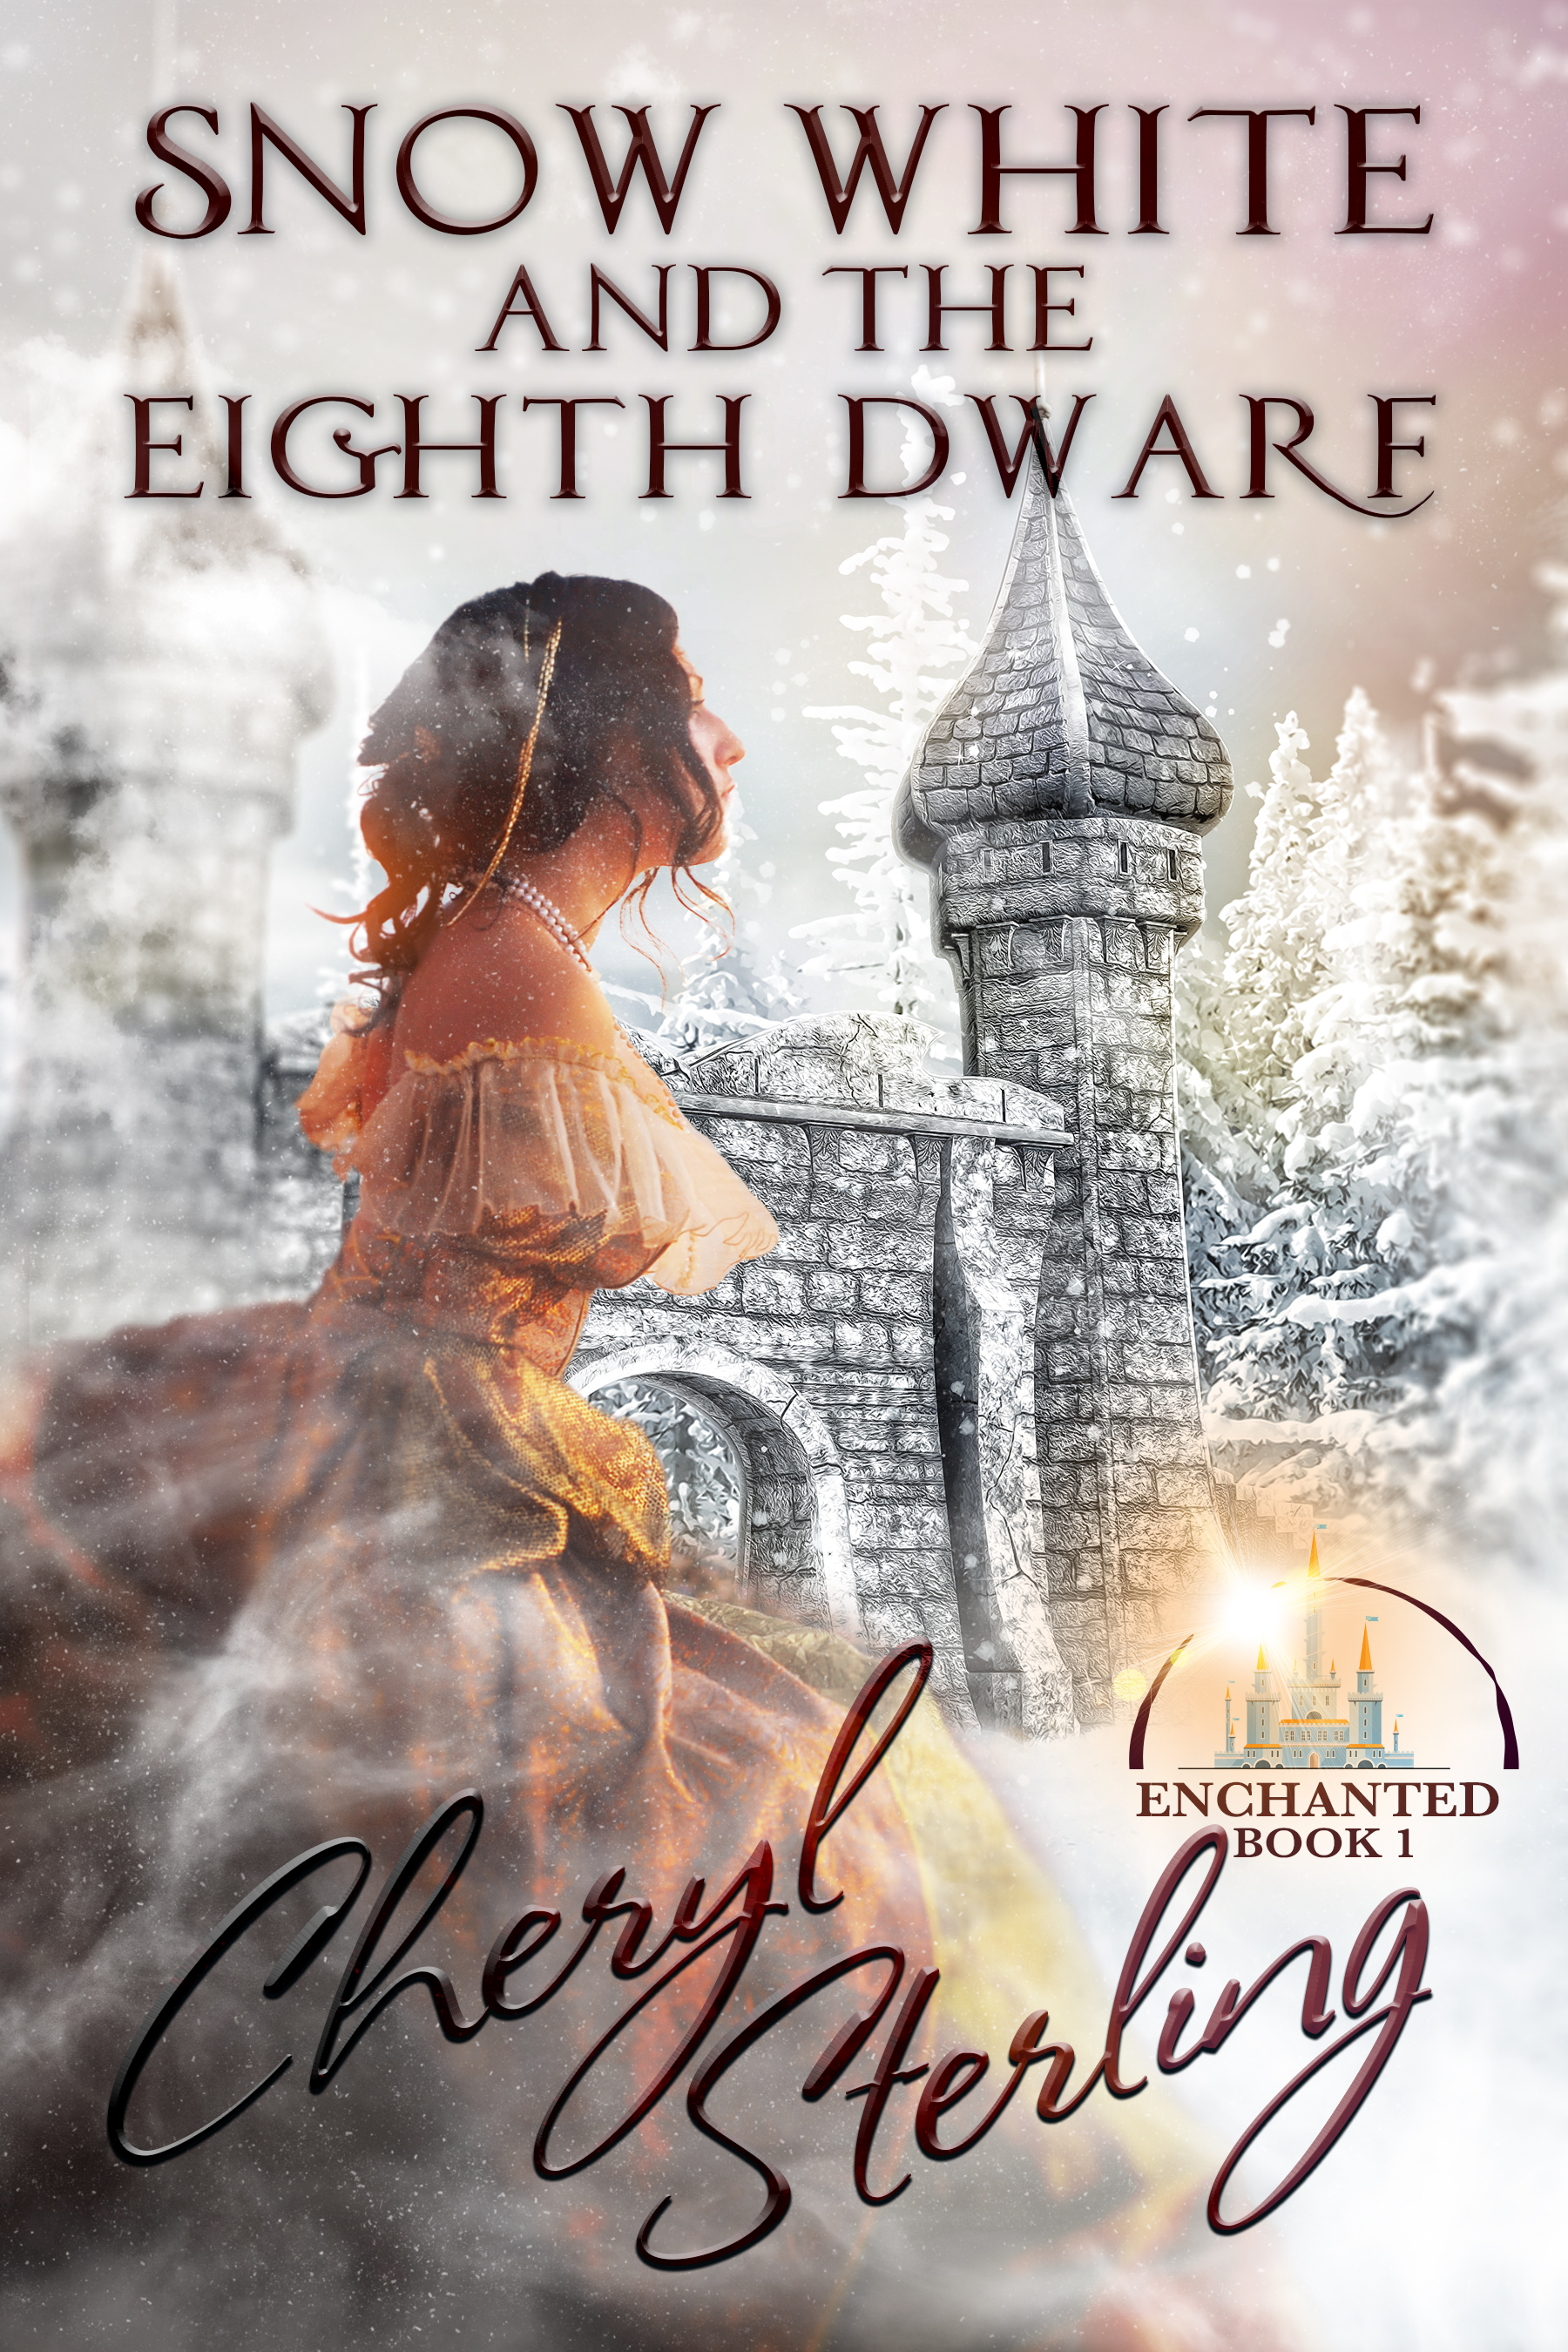 Snow White and the Eighth Dwarf, an adult fairy tale recreation